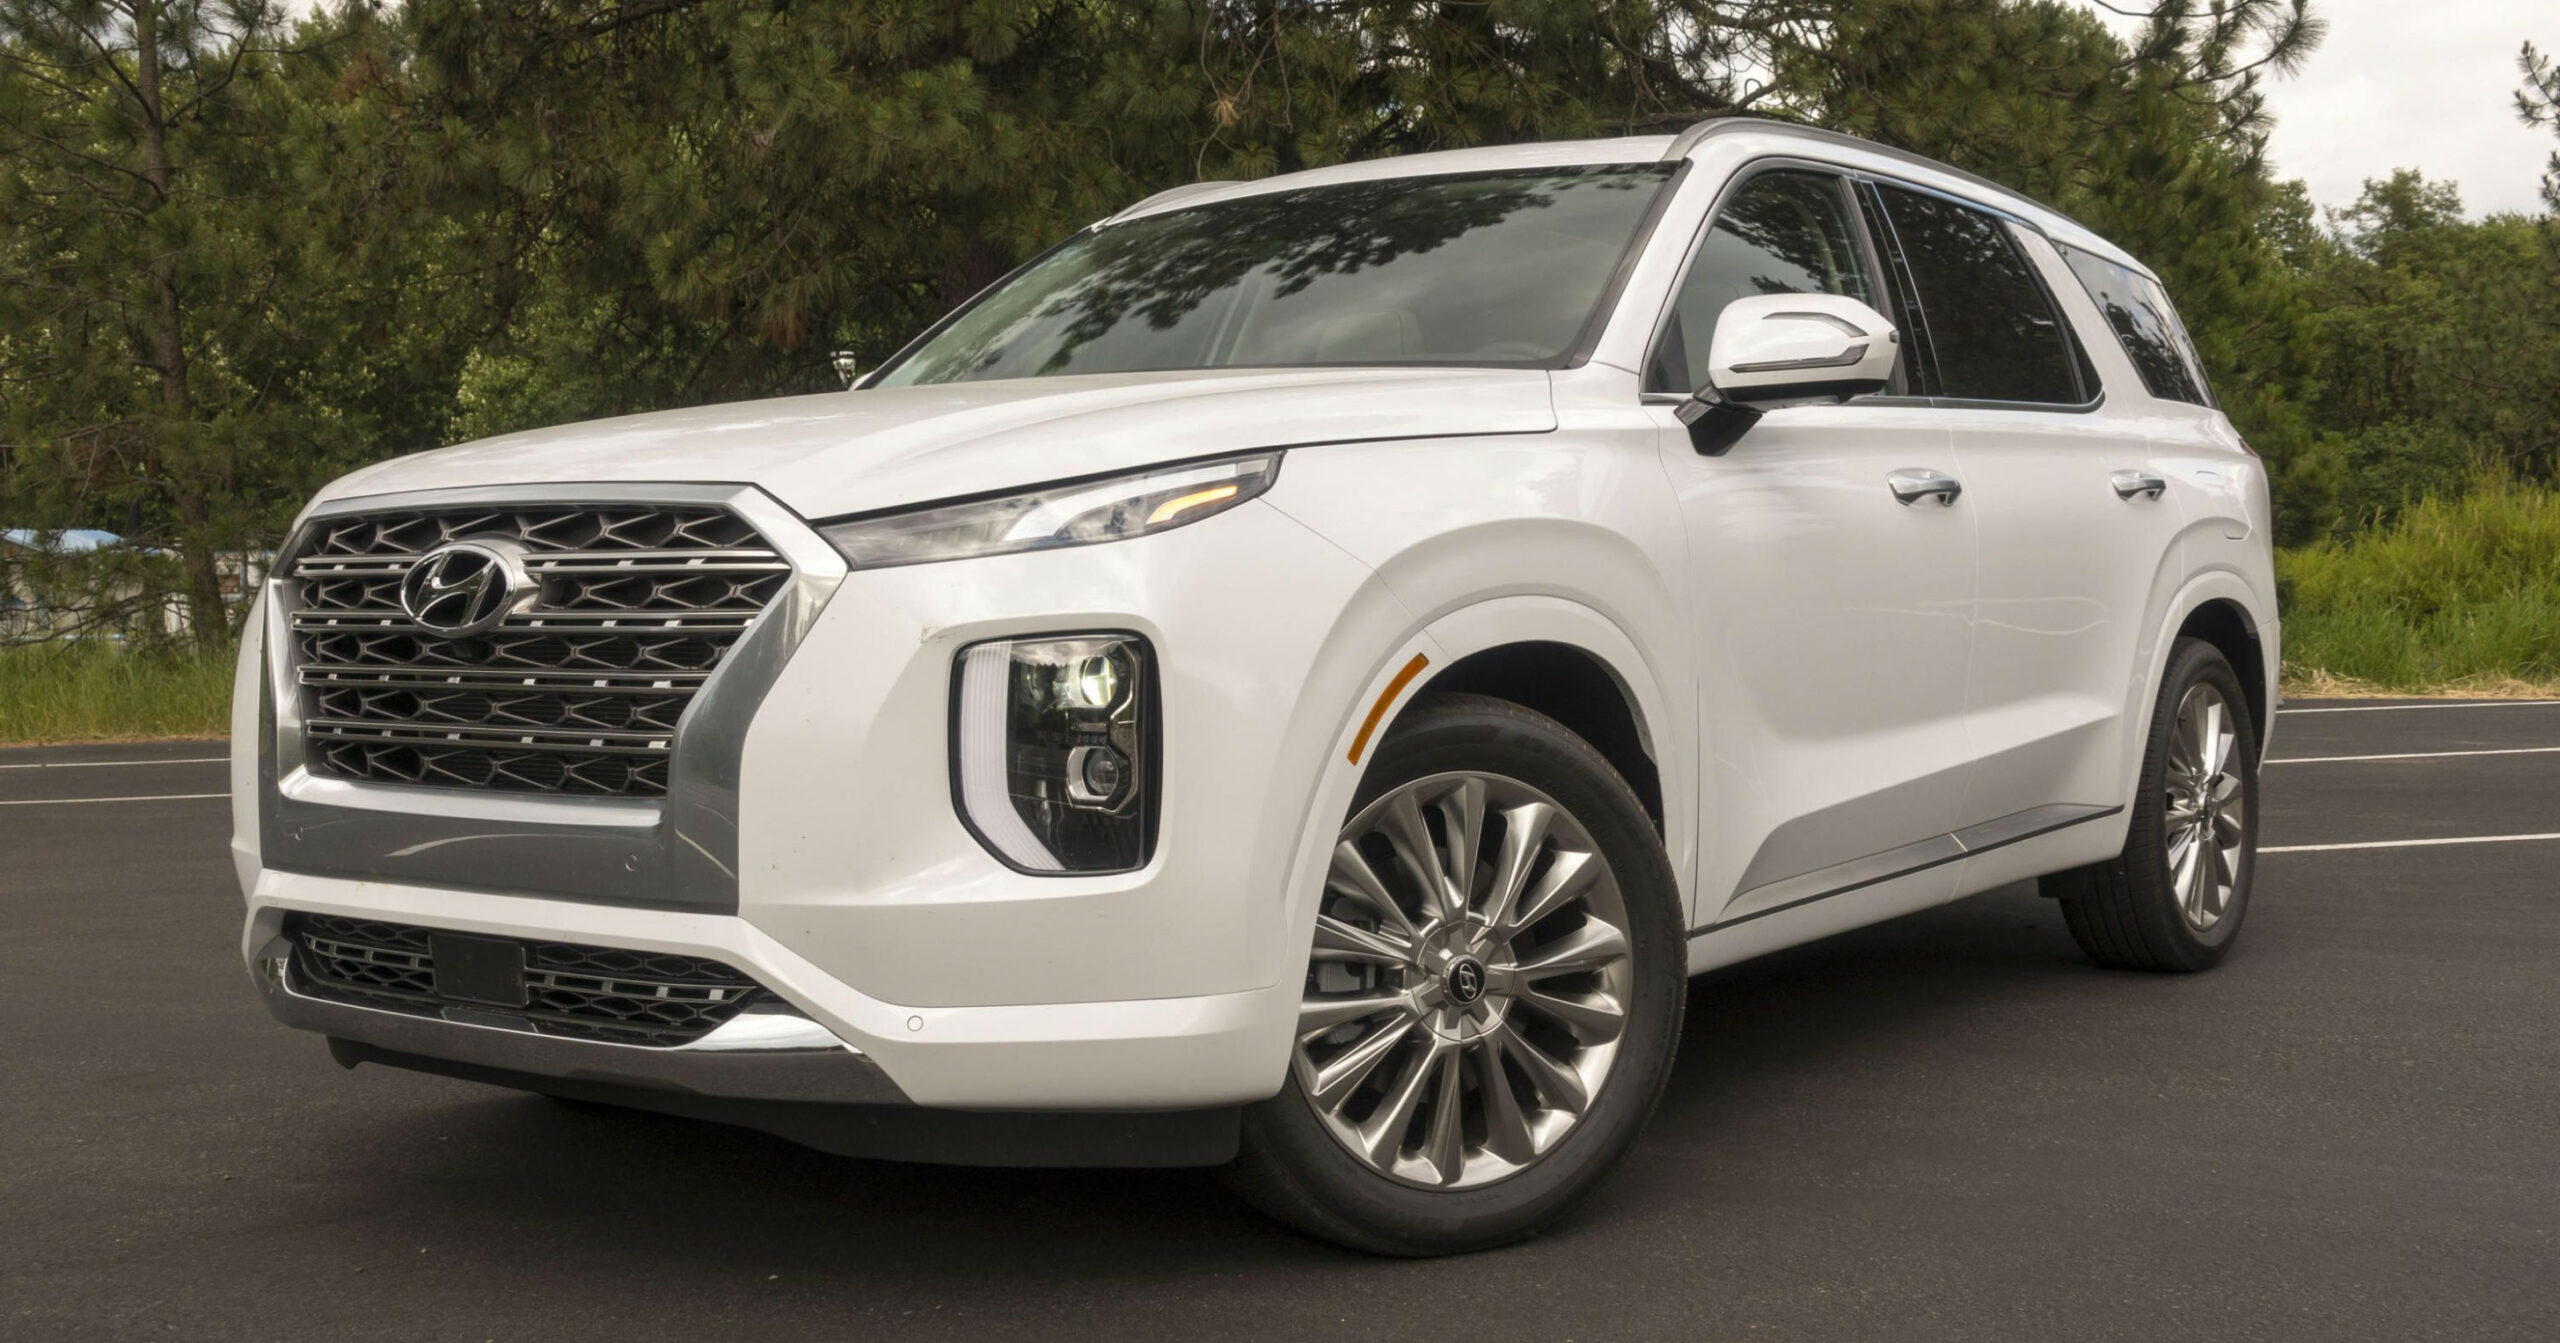 6 Hyundai Palisade first drive review: A midsize SUV that's big ...